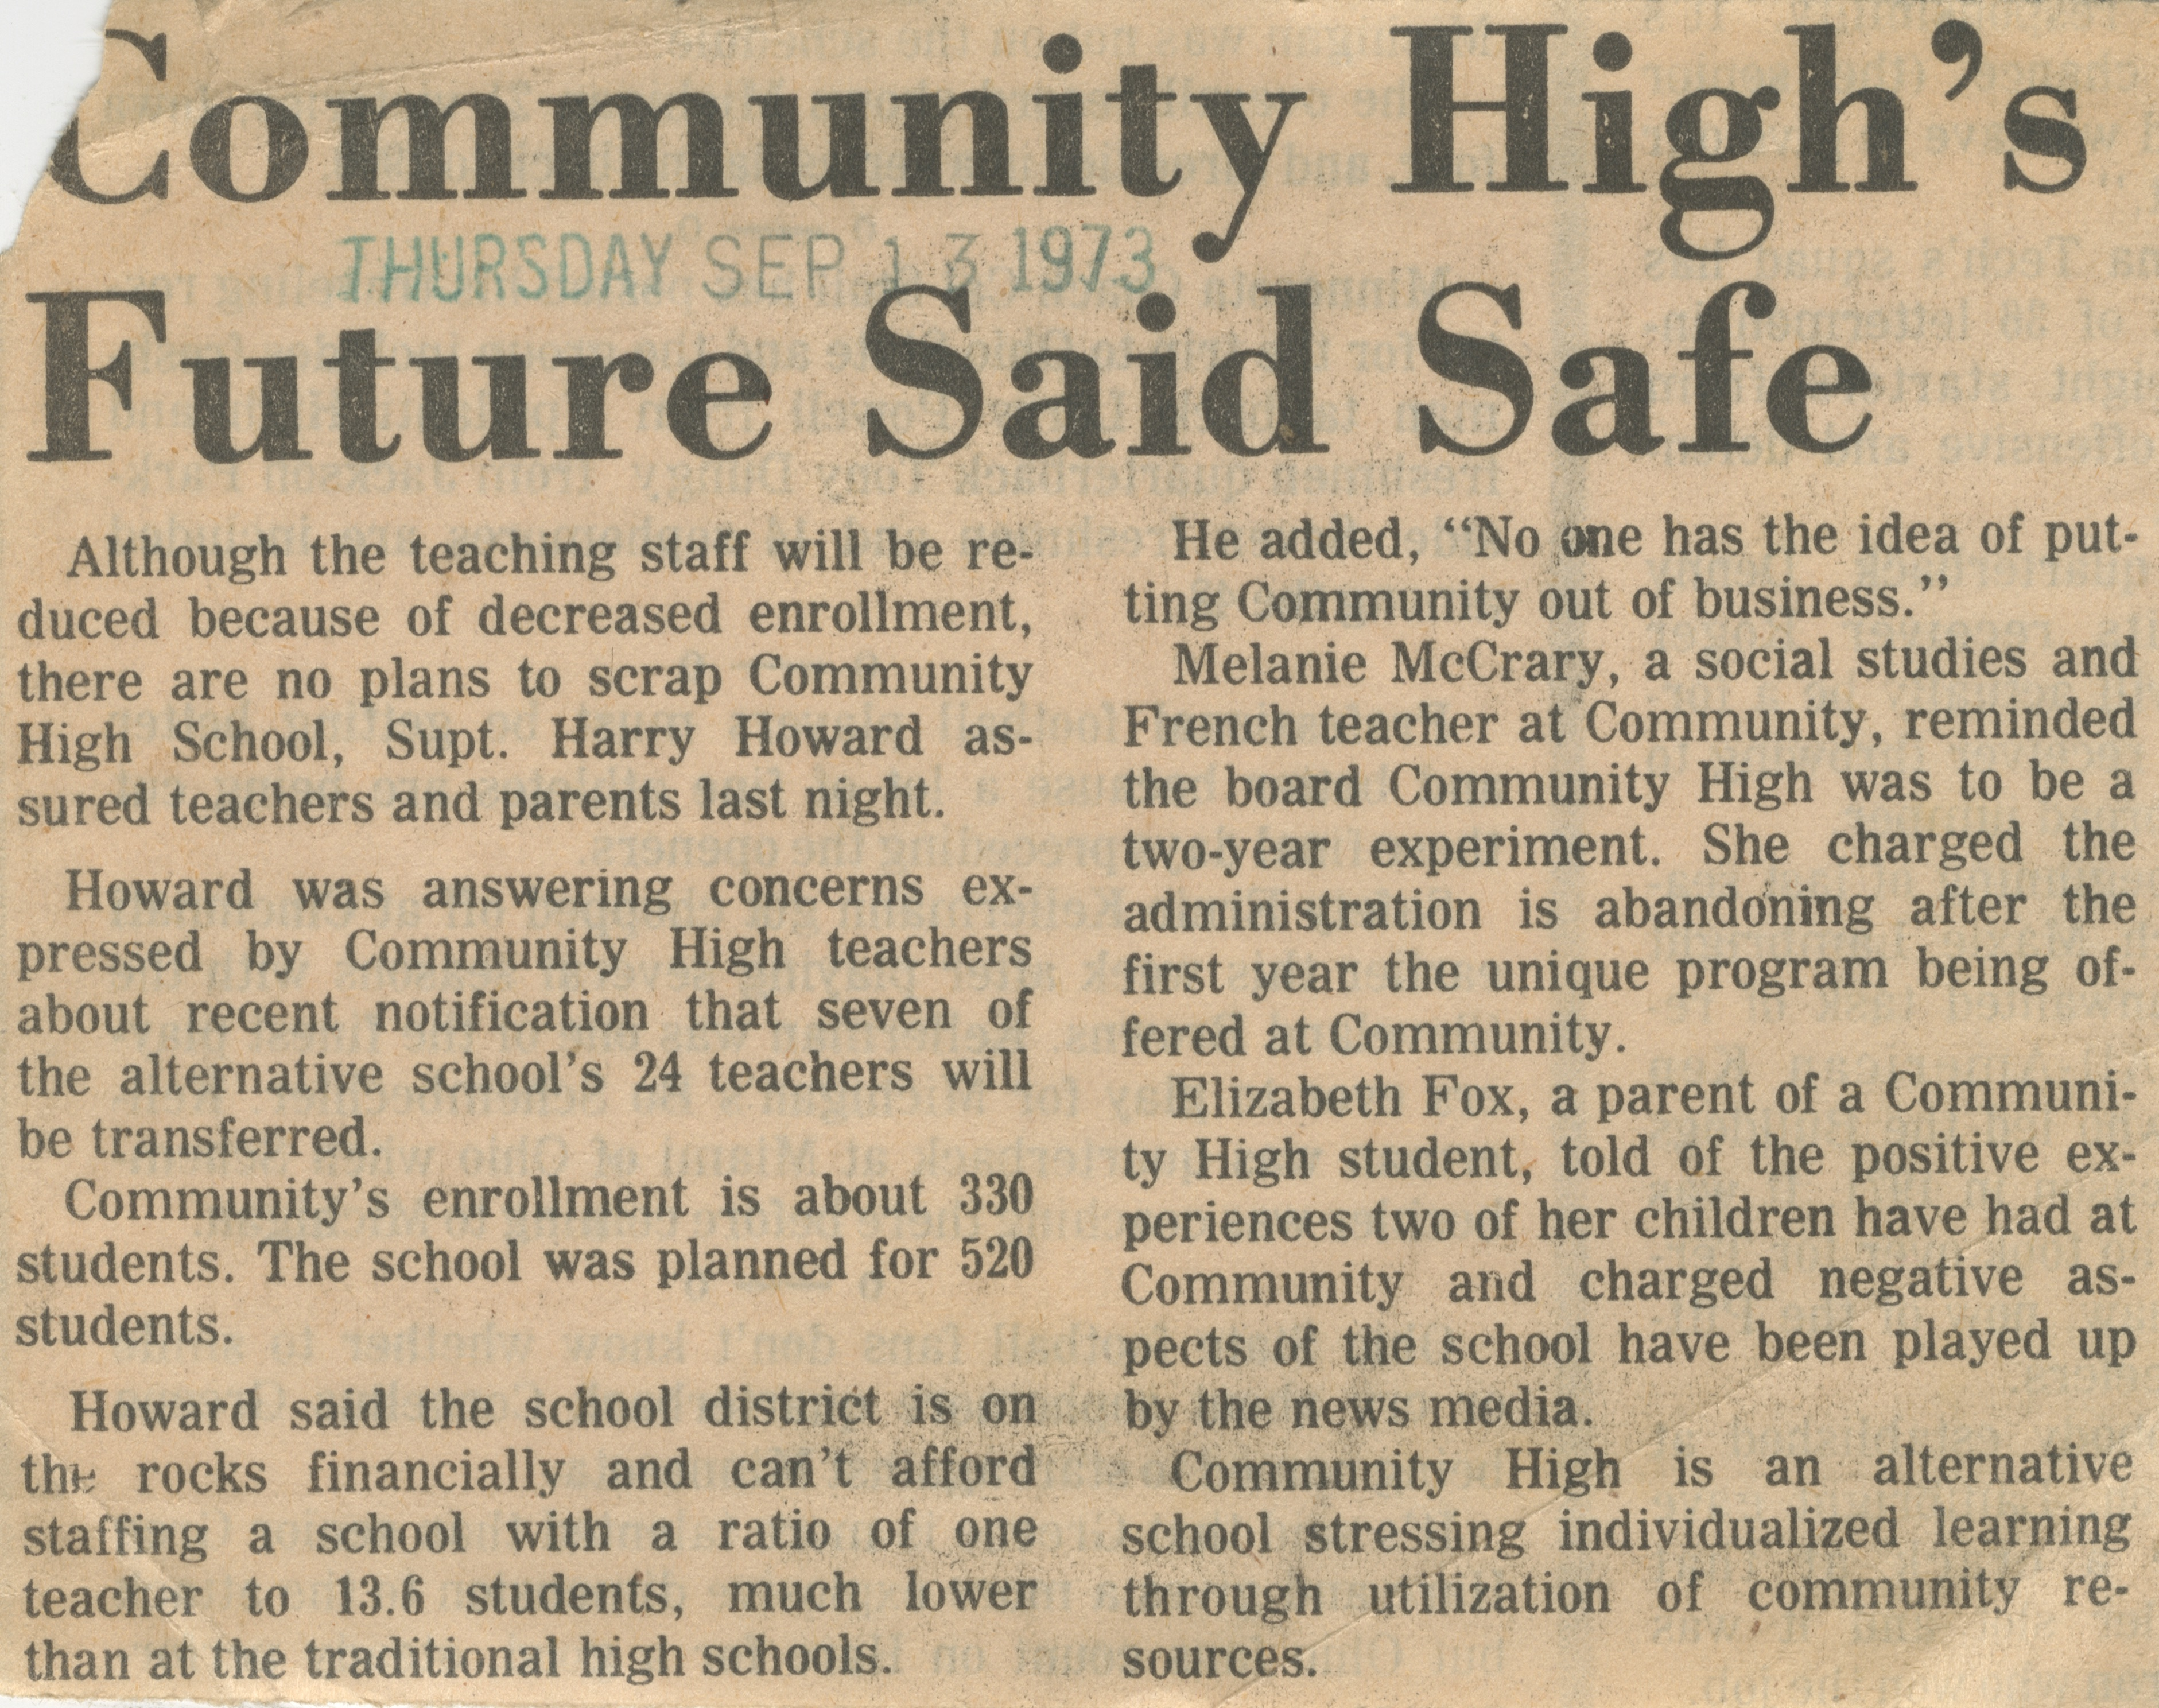 Community High's Future Said Safe image